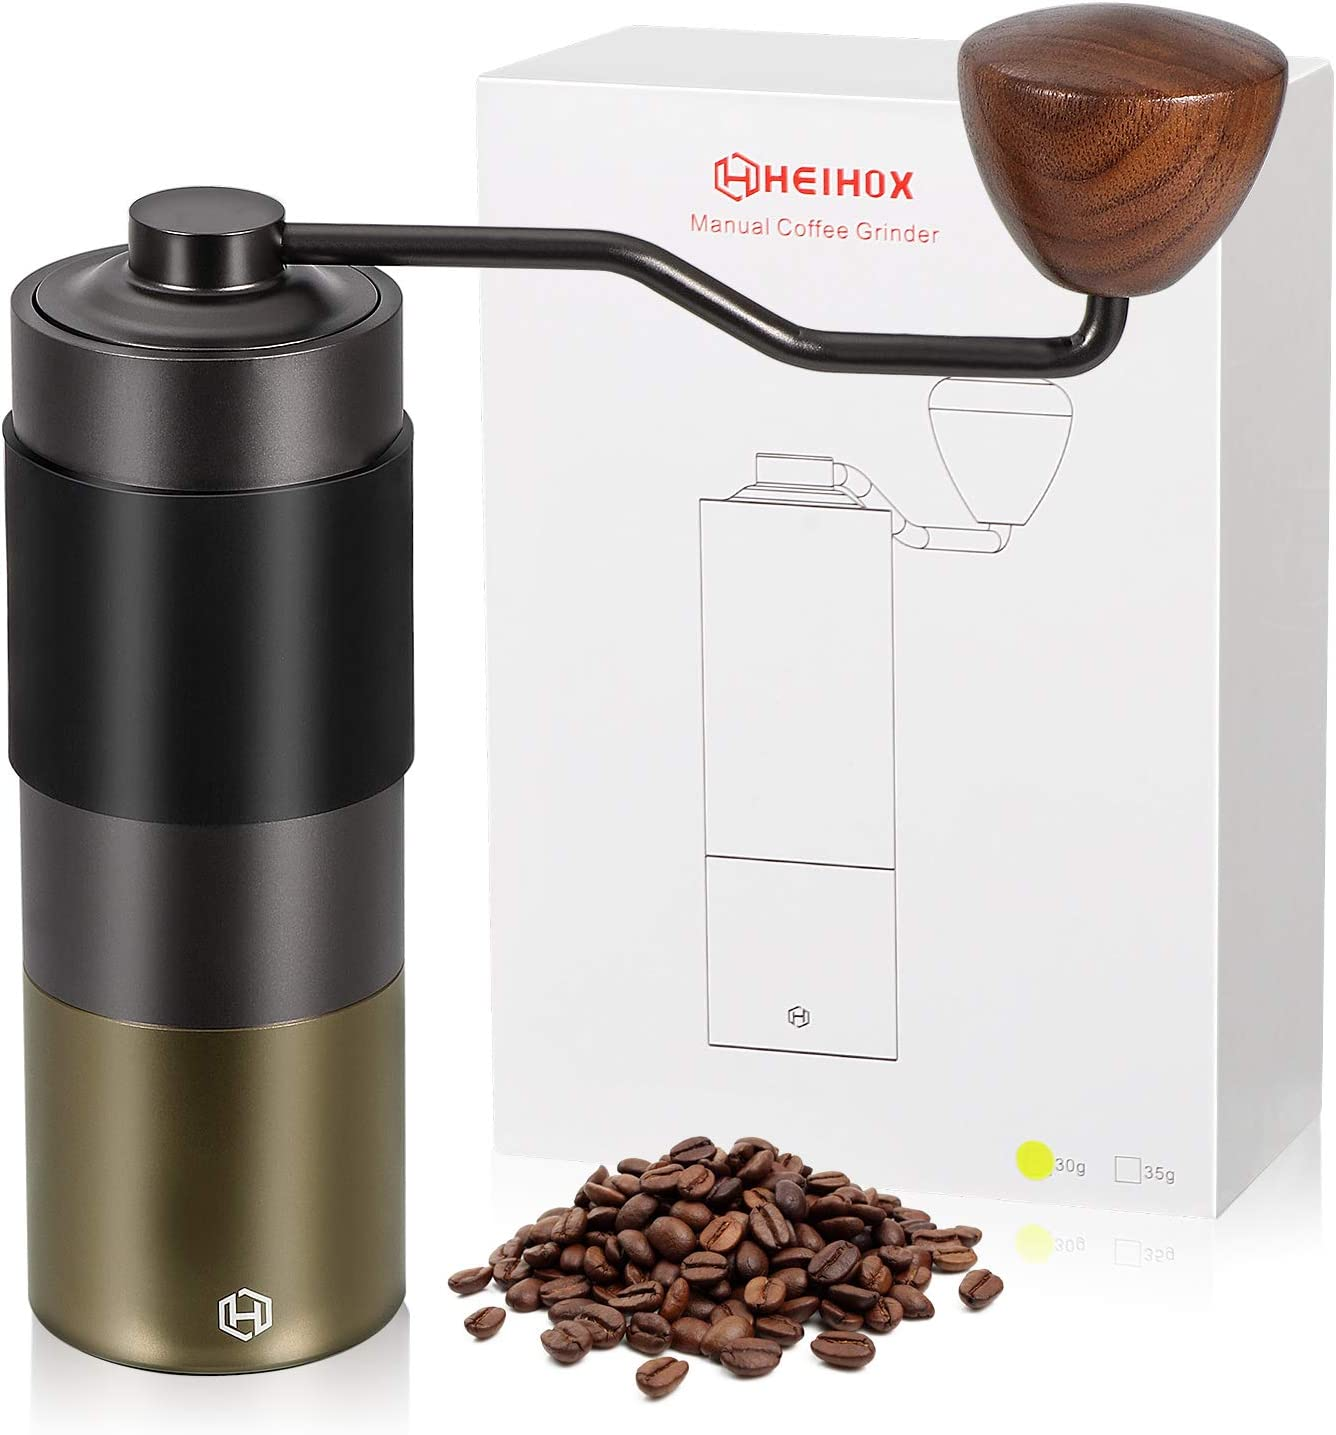 French Press Hand Held Burr Bean Grinder Stainless Steel Hand Crank Mill Offers Consistency and Precision with Adjustable Ceramic Conical Drip Coffee Espresso Turkish Brew Manual Coffee Grinder